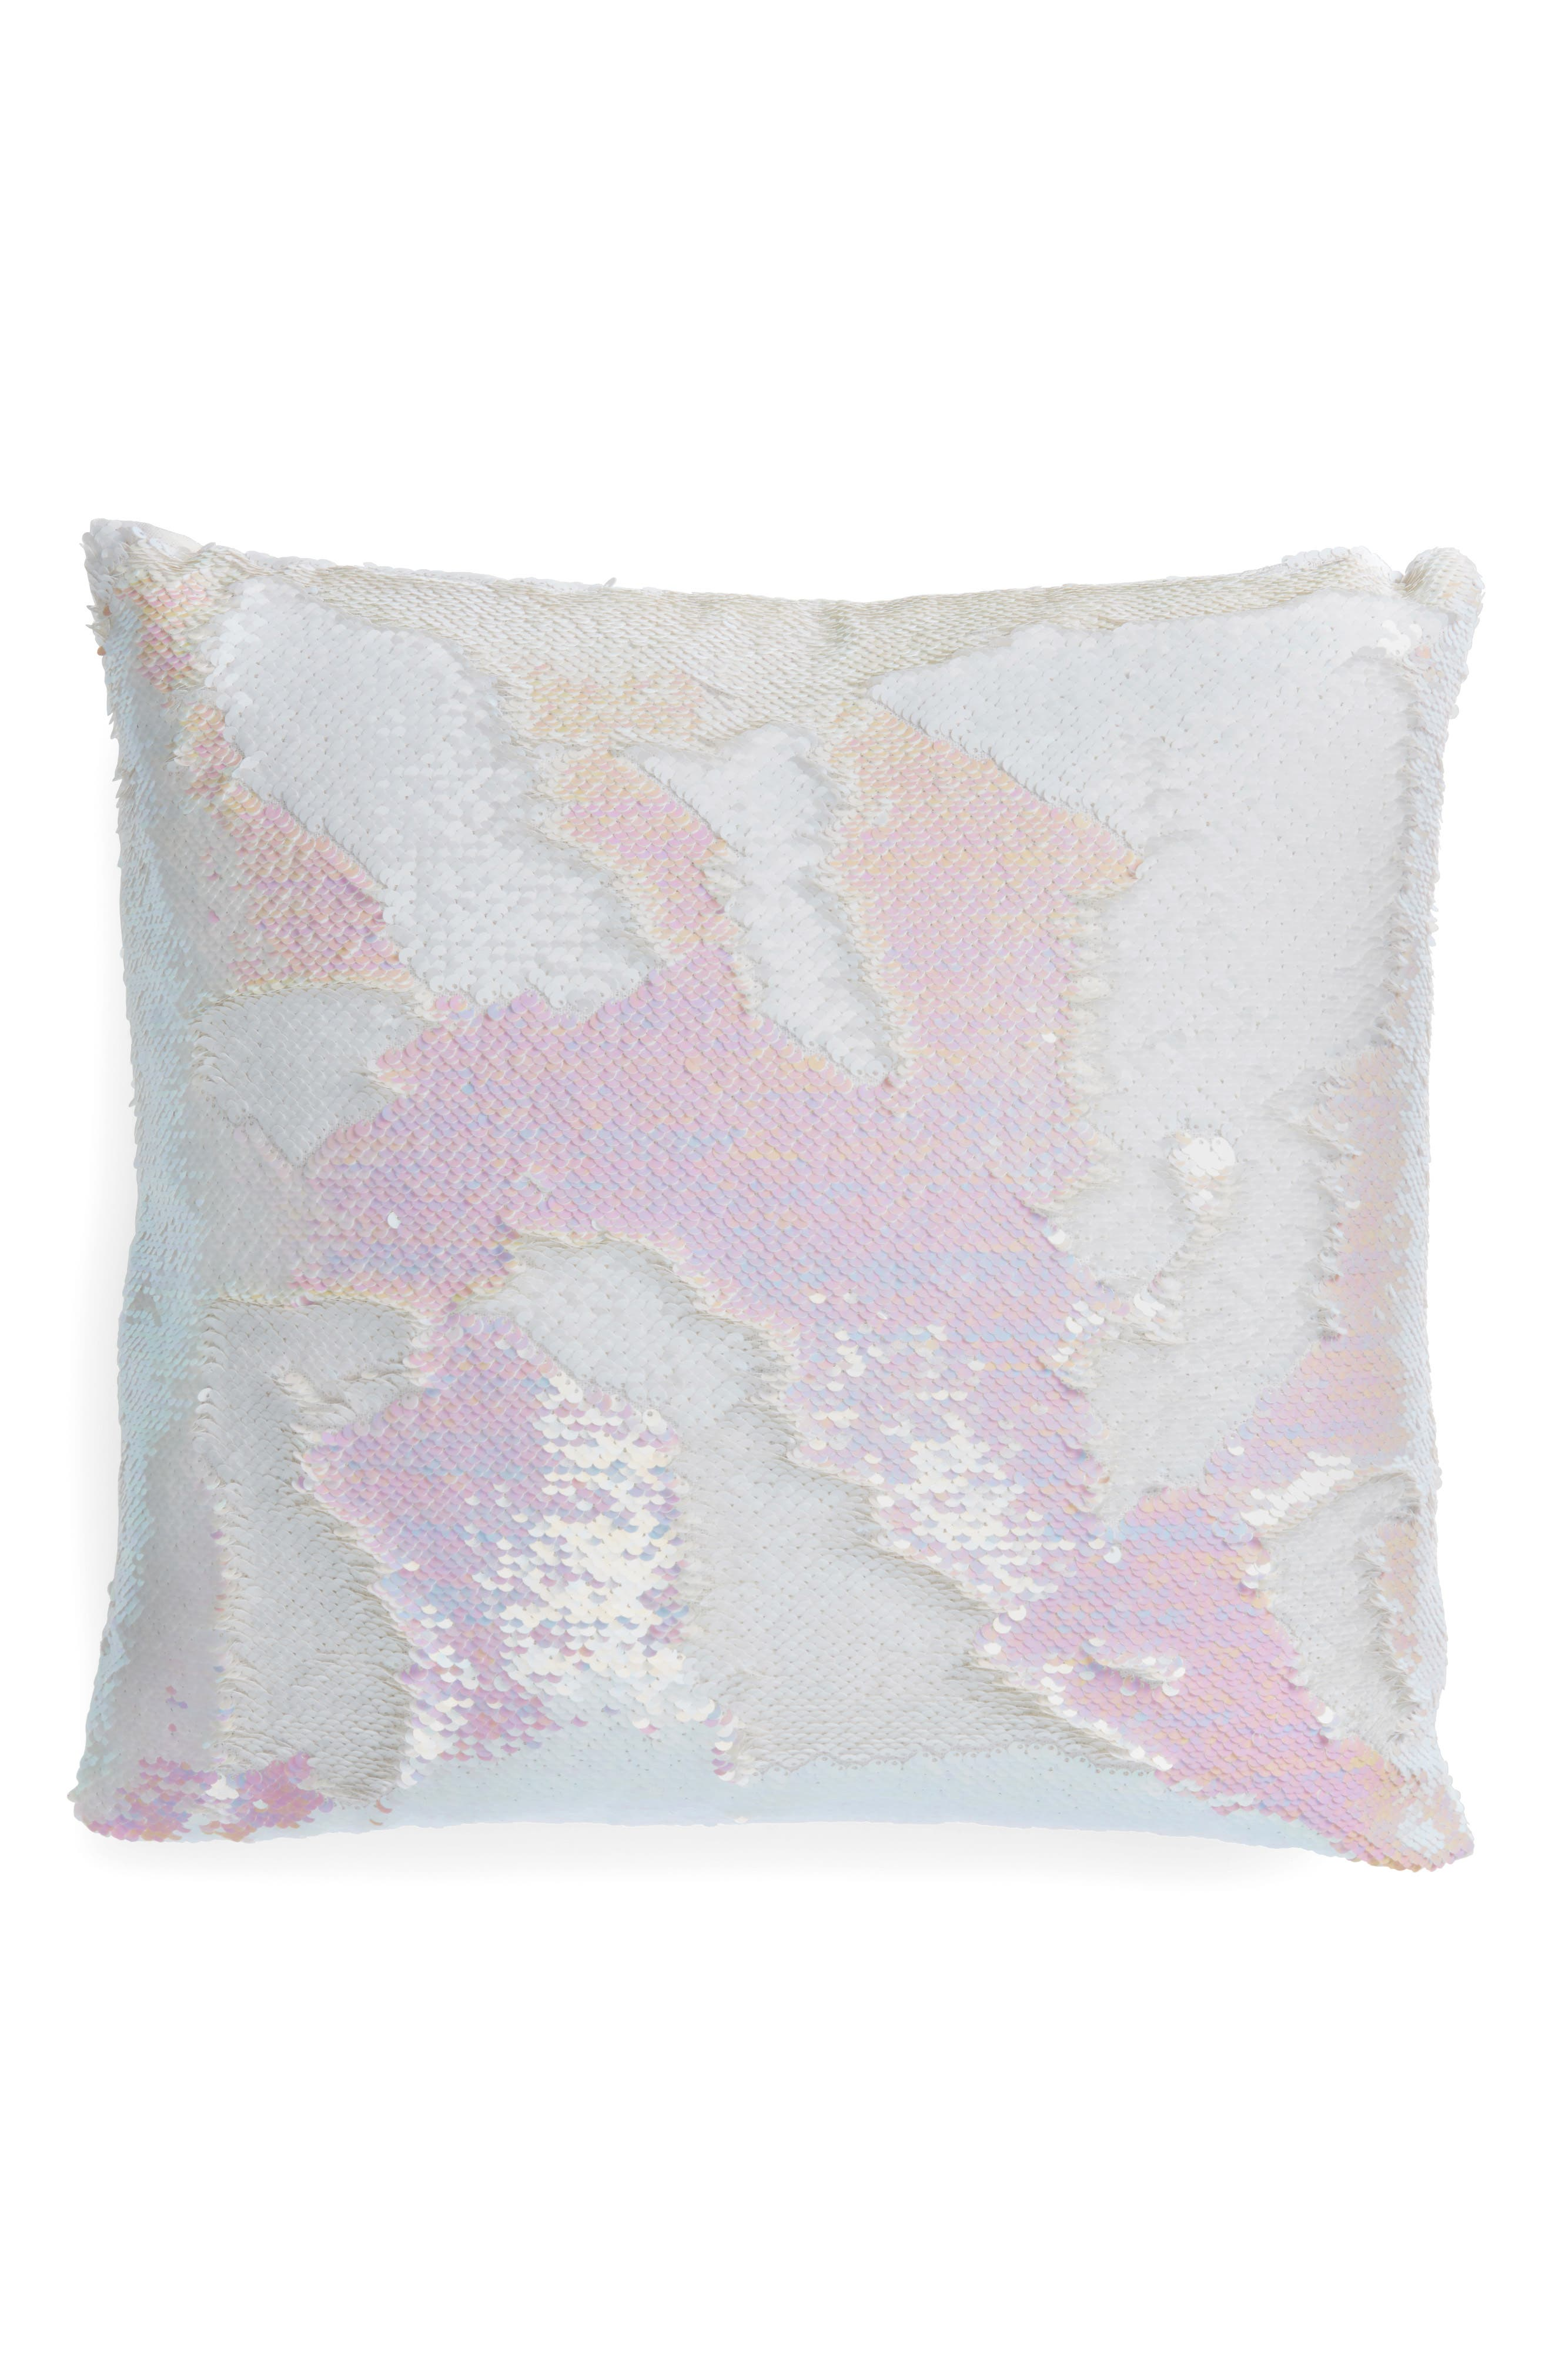 Iridescent Sequin Accent Pillow,                             Main thumbnail 1, color,                             Ivory